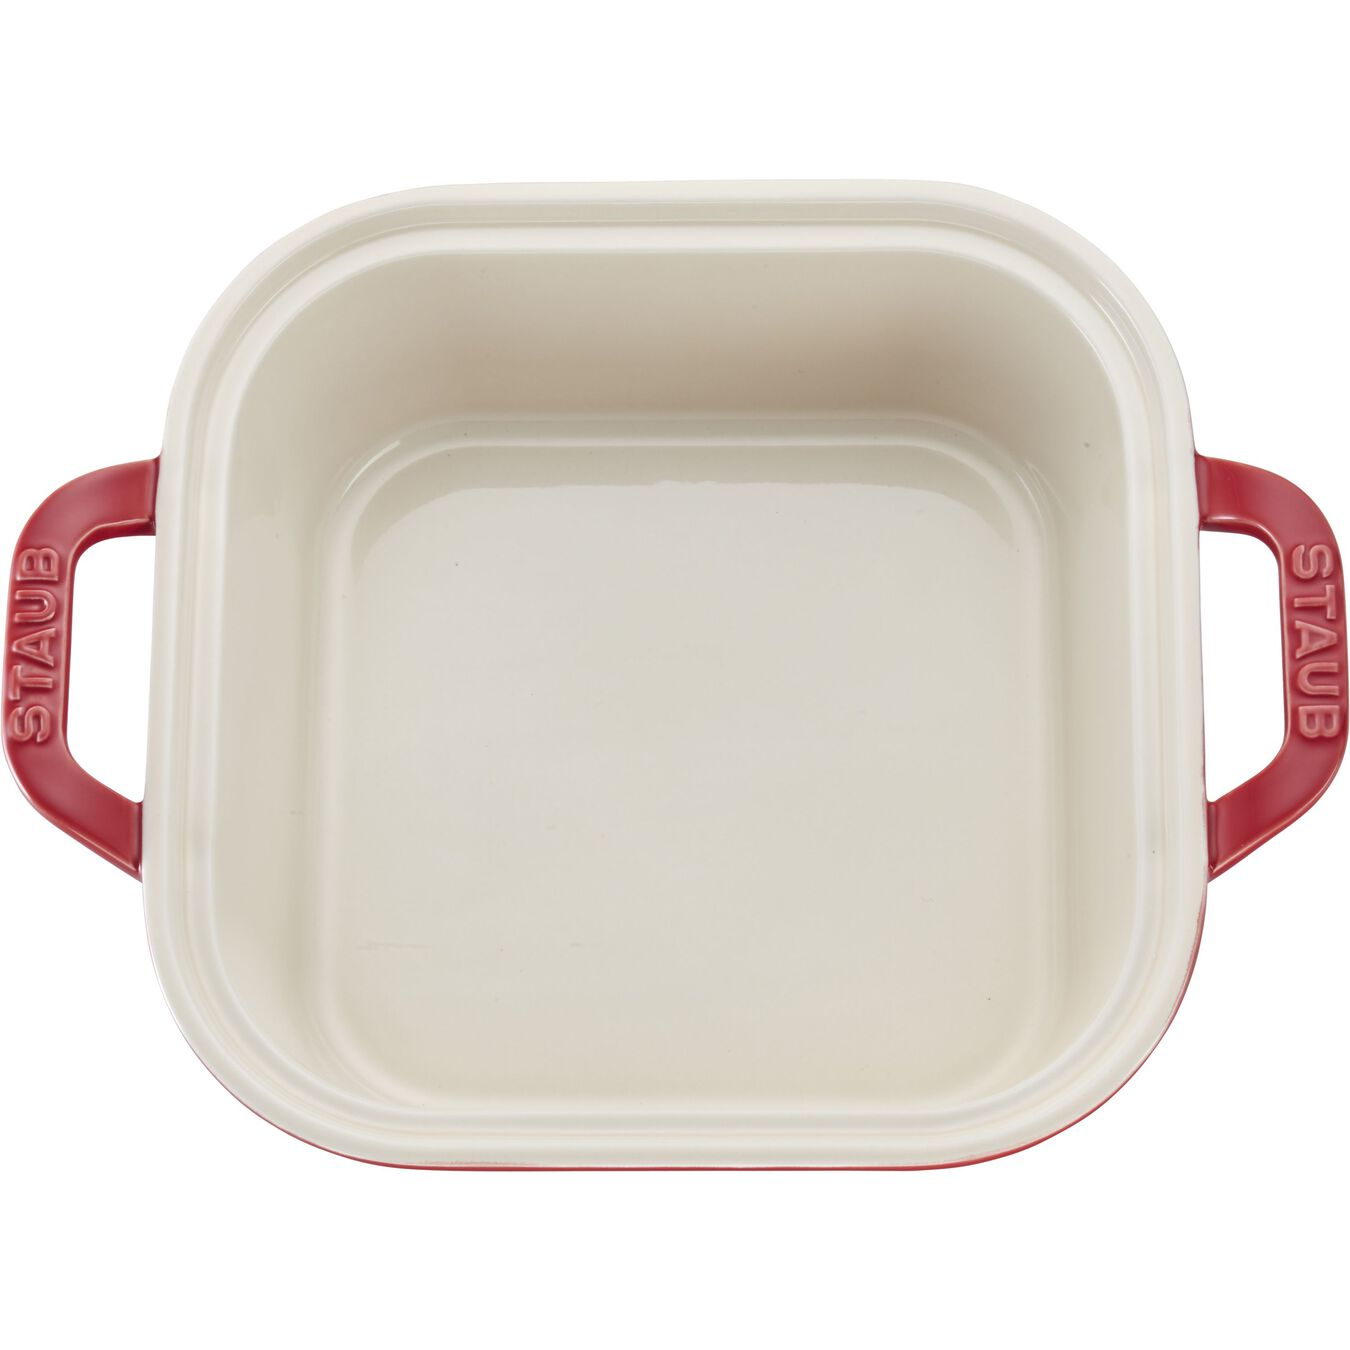 9-inch X 9-inch Square Covered Baking Dish - White,,large 6